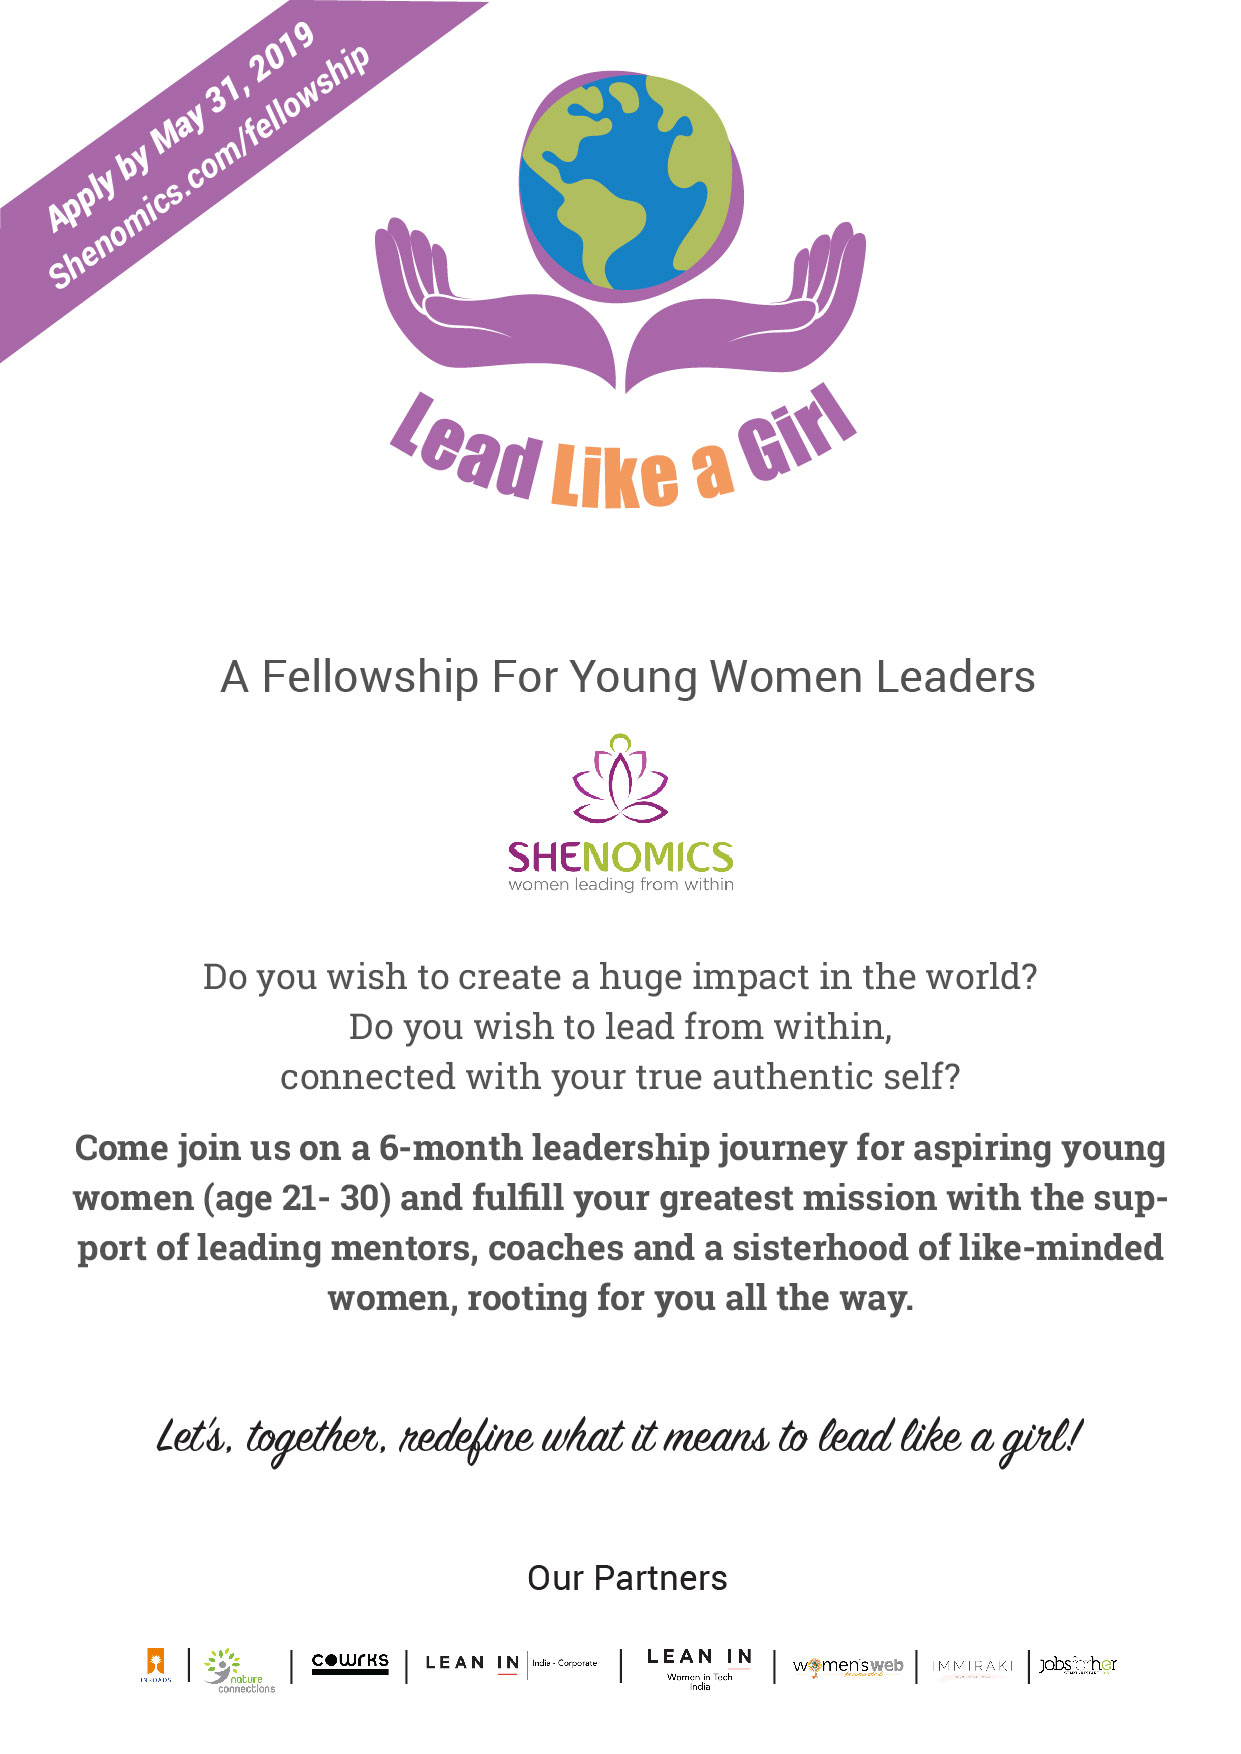 jobsforher-and-shenomics-present-lead-like-a-girl-a-fellowship-program-for-young-women-leaders